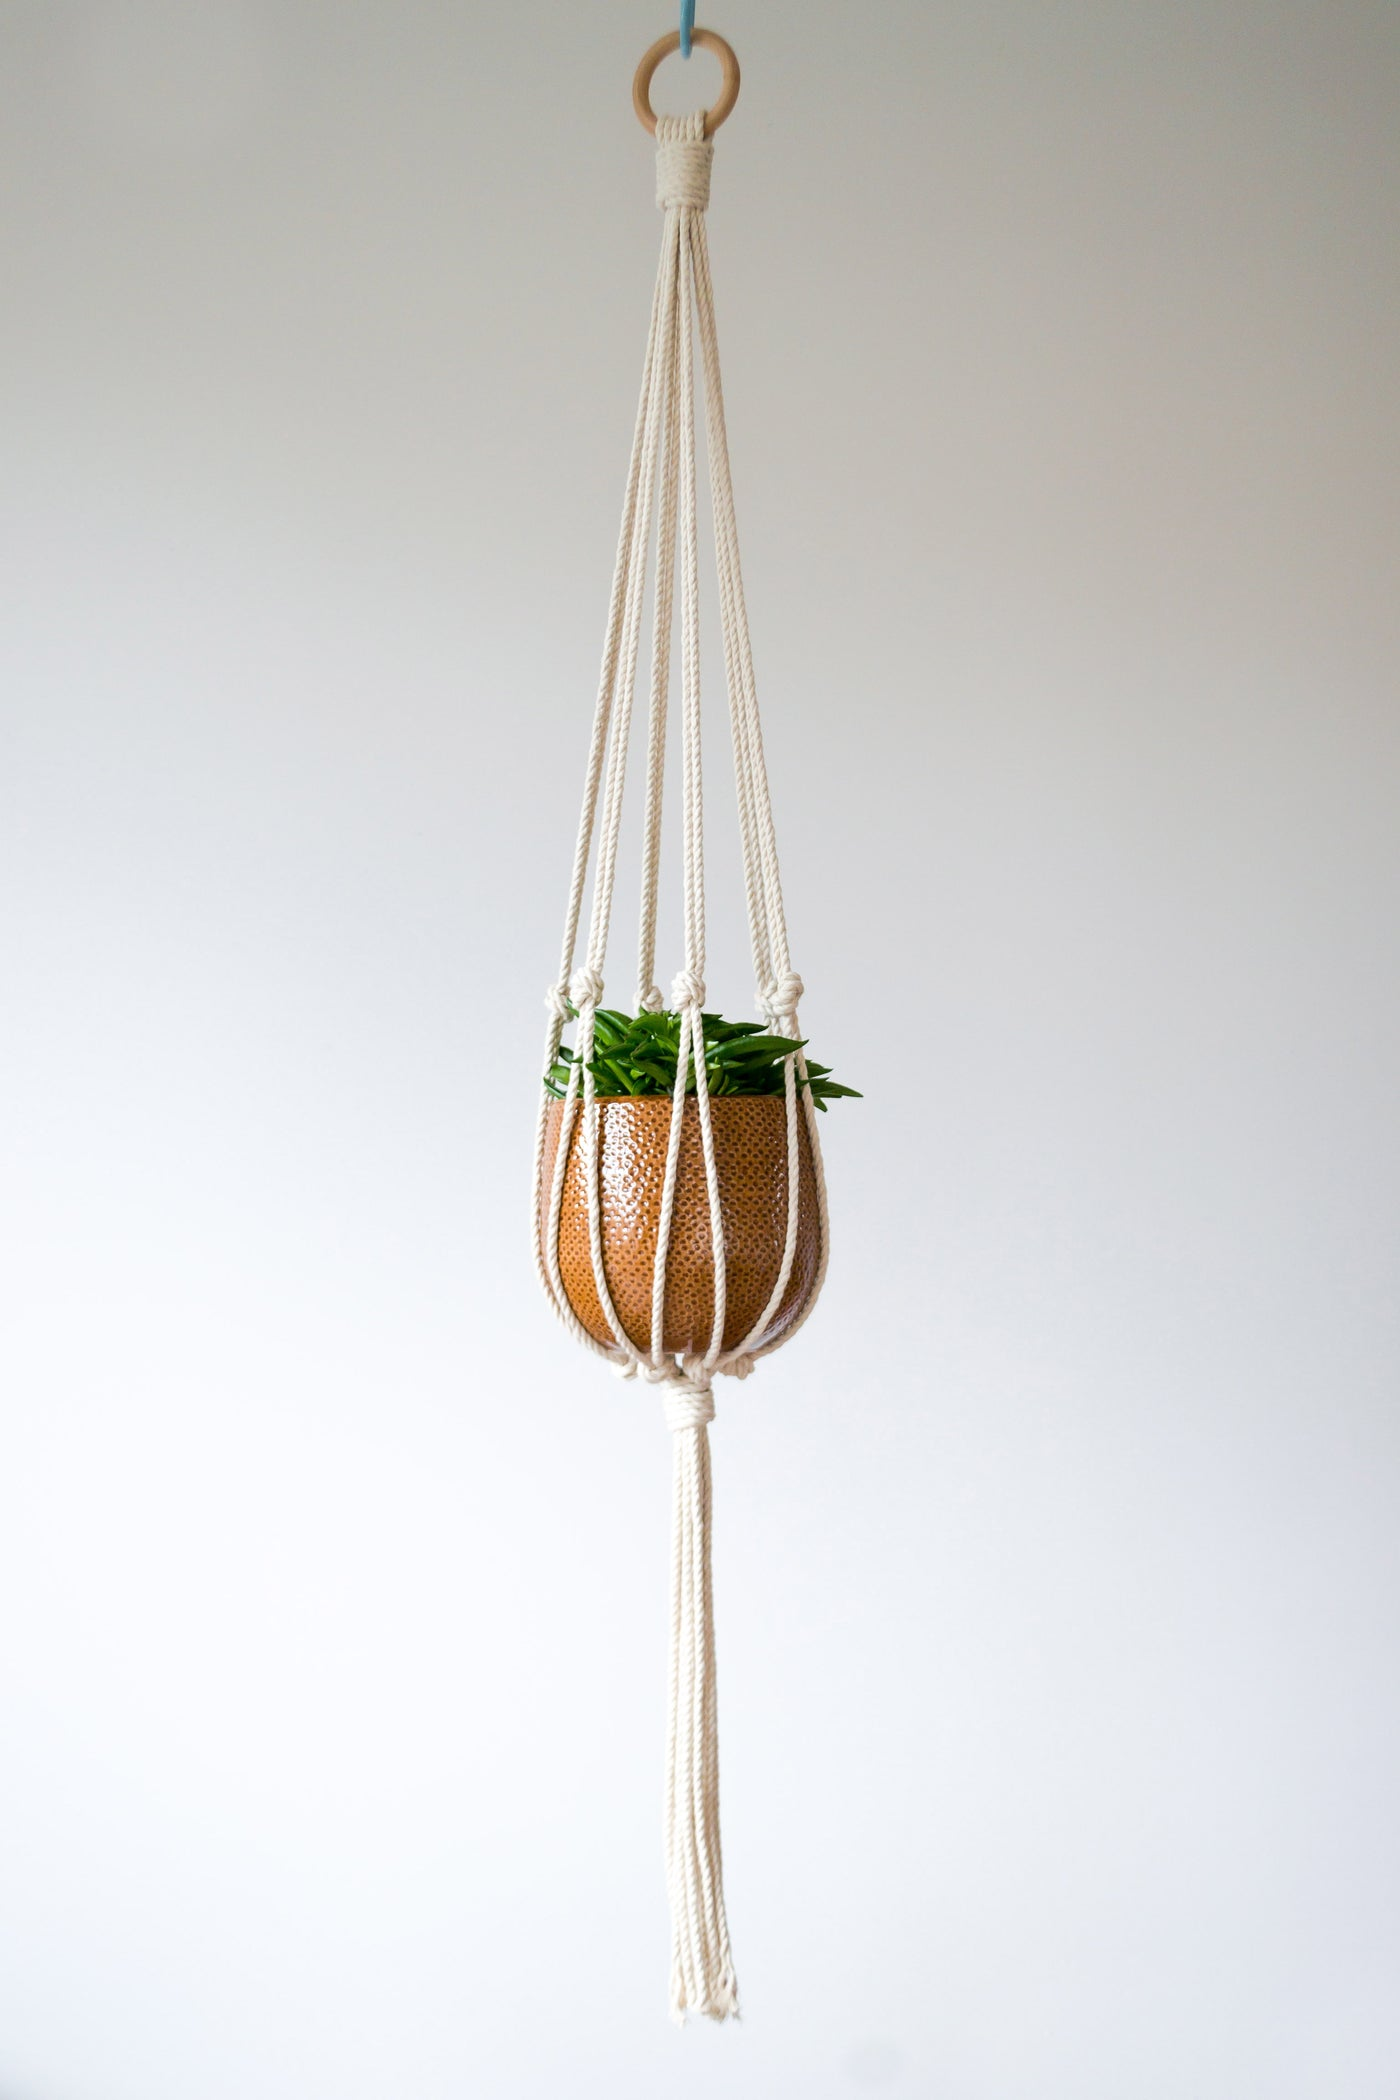 Minimalist Macrame Plant Hanger - Available in White, Mustard, Red, Salmon and Lavender